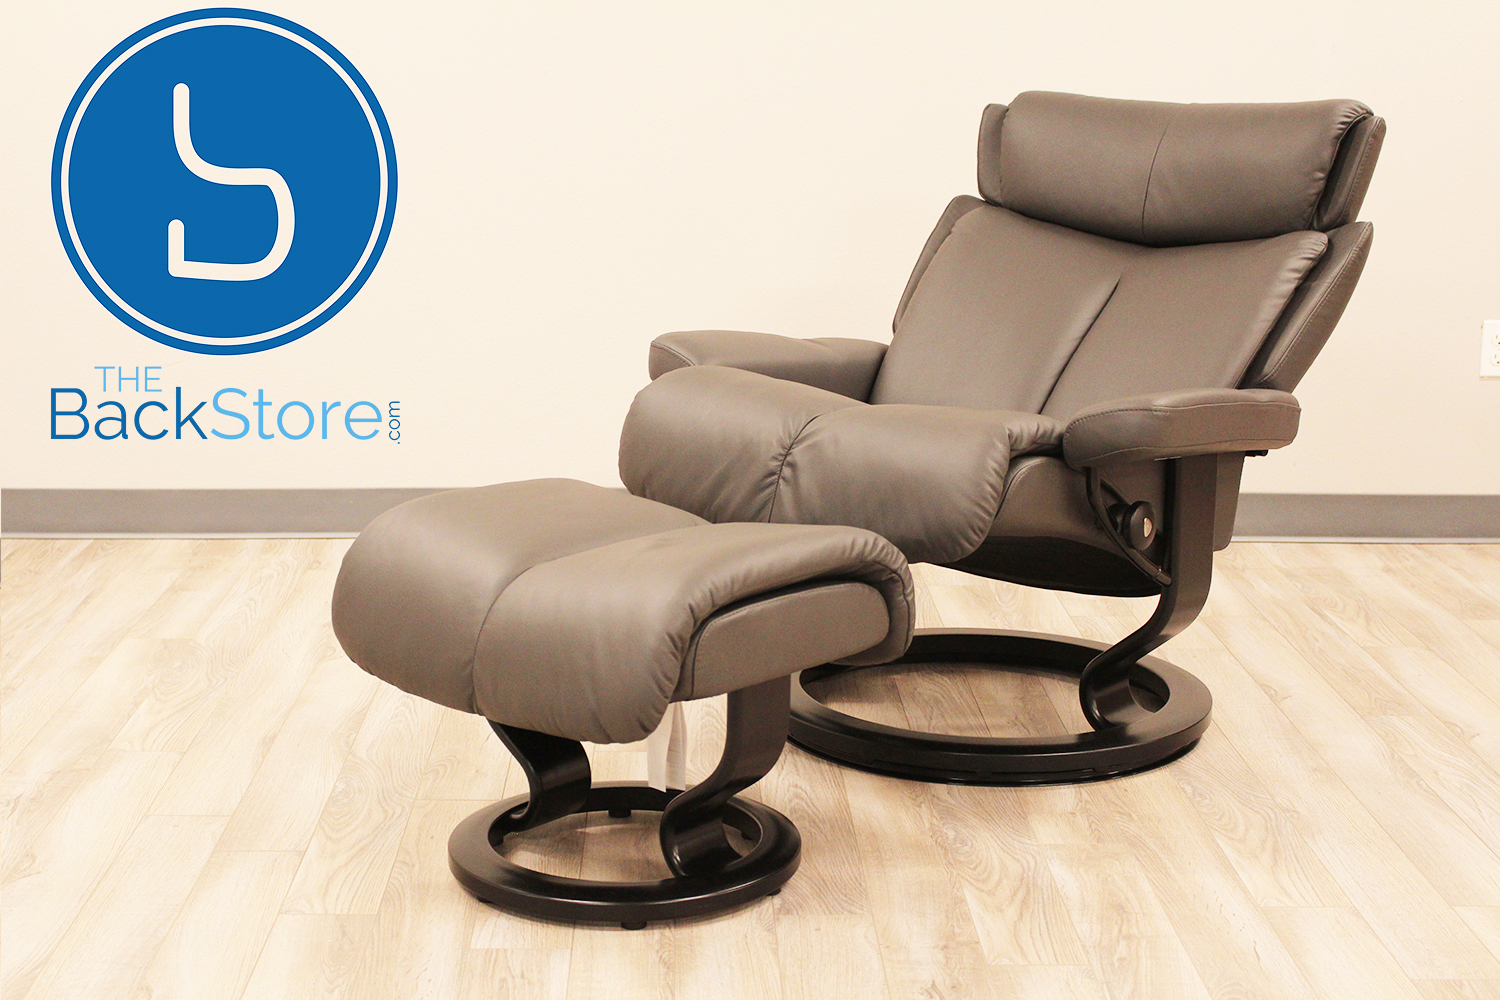 Stressless Magic Medium Paloma Rock Color Leather Recliner Chair and Ottoman & Stressless Magic Medium Paloma Rock Color Leather by Ekornes ... islam-shia.org